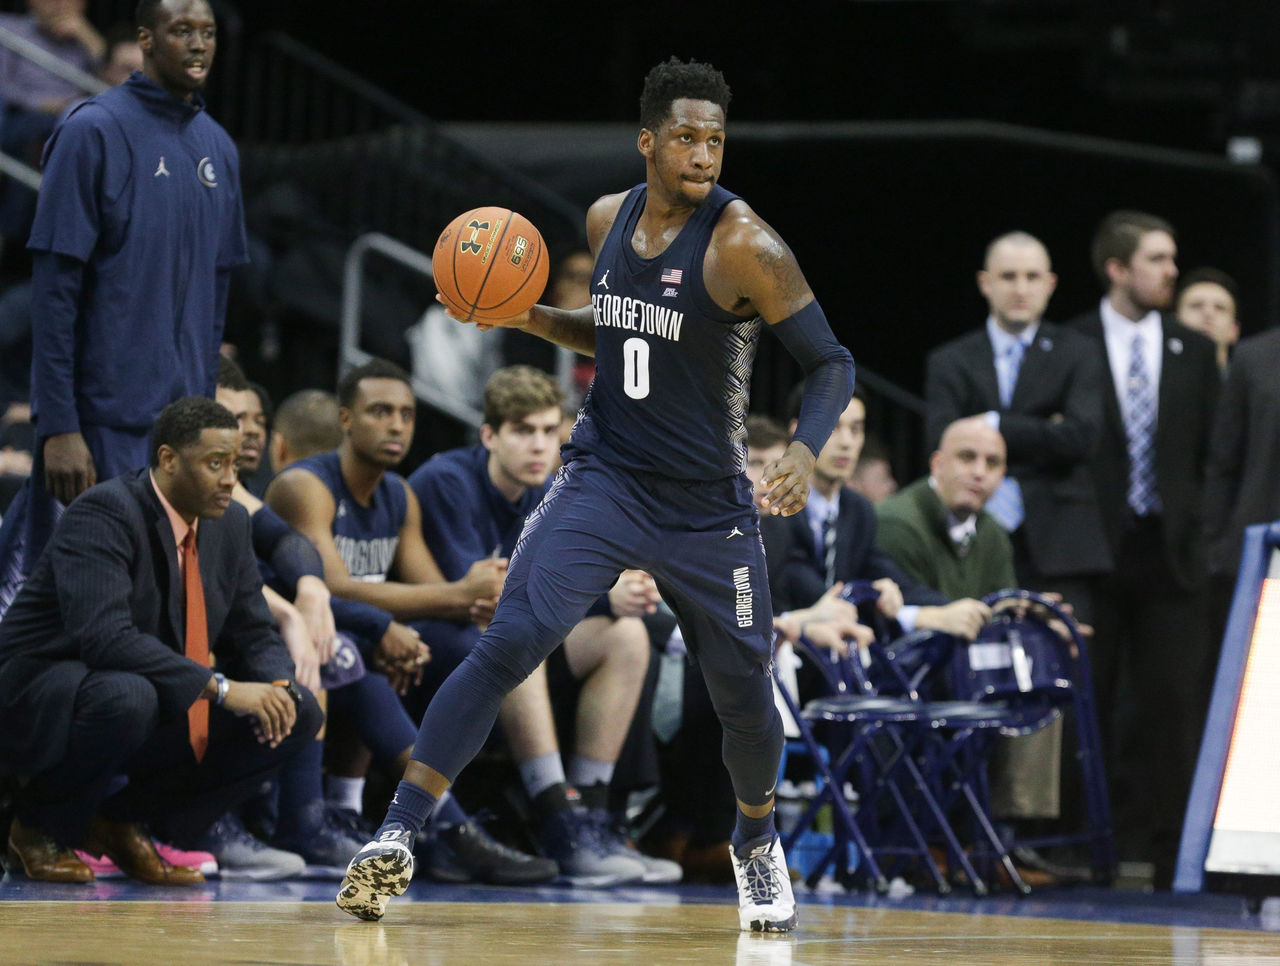 Cropped_2017-03-01t020101z_1090185288_nocid_rtrmadp_3_ncaa-basketball-georgetown-at-seton-hall